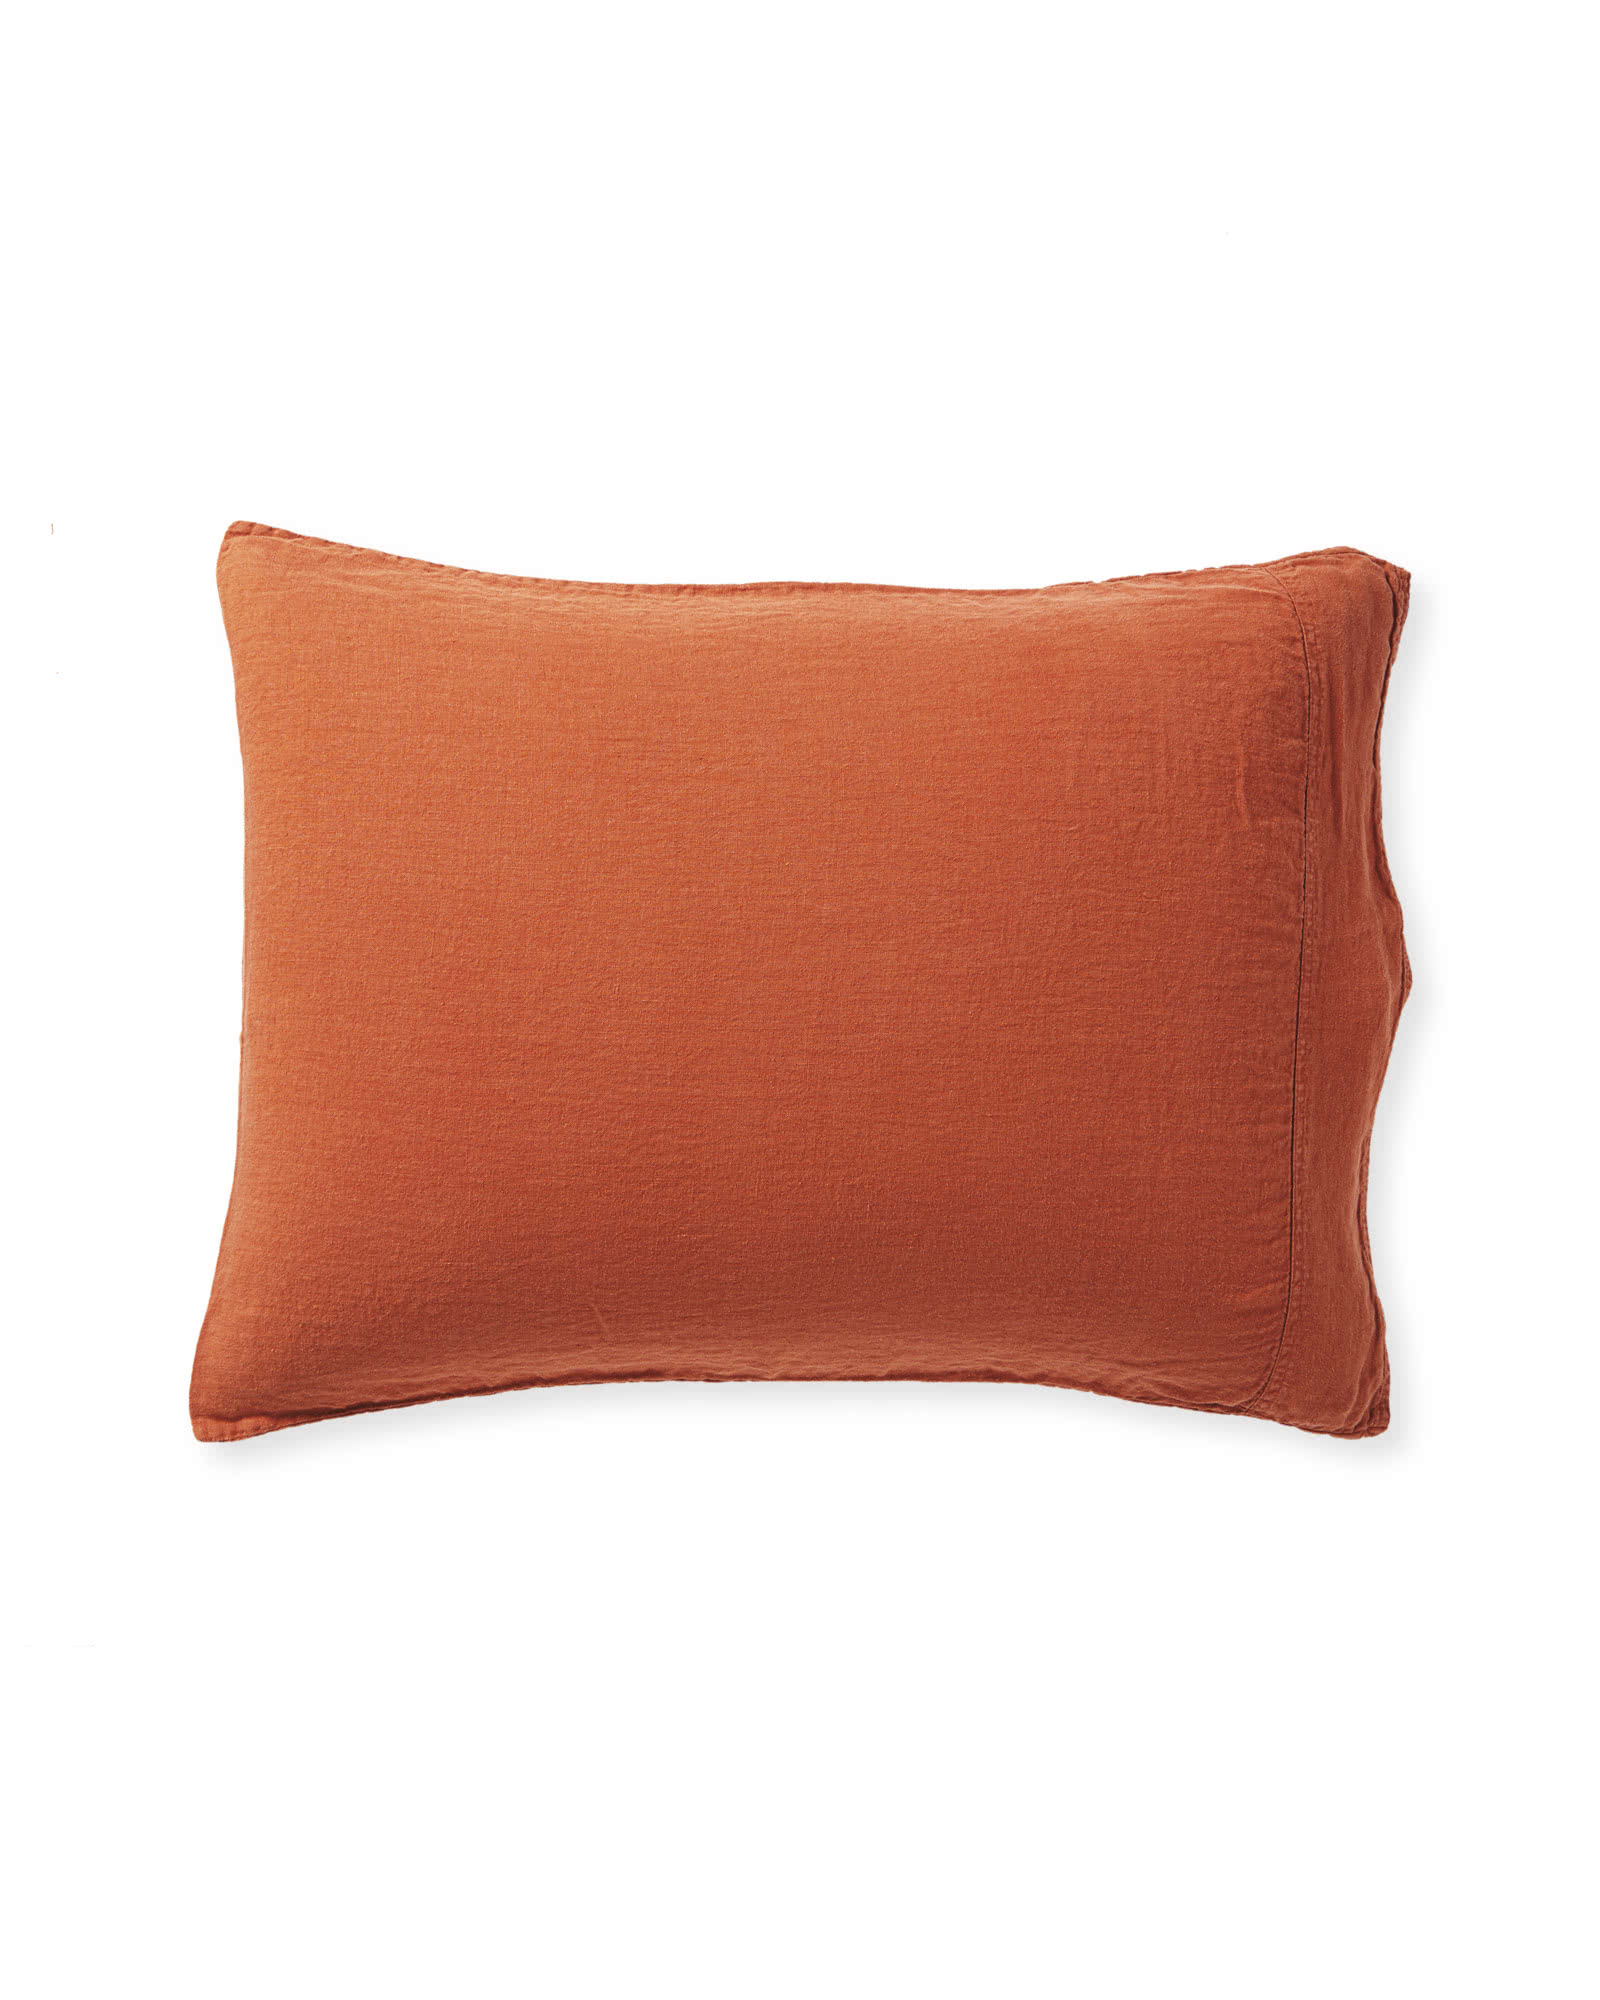 Positano Linen Pillowcases (Extra Set of 2), Terracotta